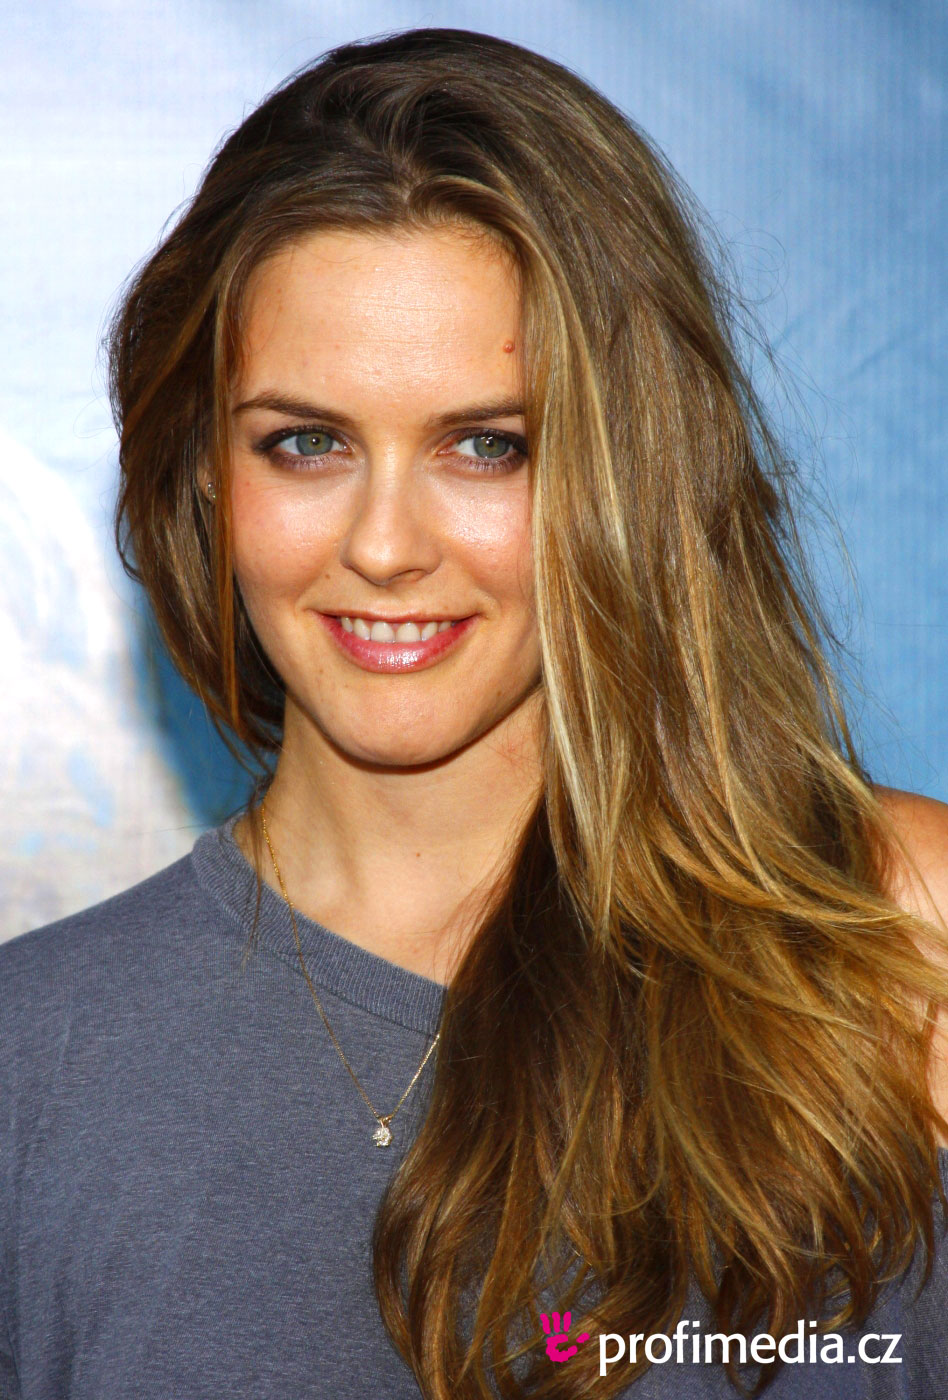 Alicia Silverstone Romance Hairstyles Pictures, Long Hairstyle 2013, Hairstyle 2013, Short Hairstyle 2013, Celebrity Long Romance Hairstyles 2013, Emo Romance Hairstyles, Curly Romance Hairstyles